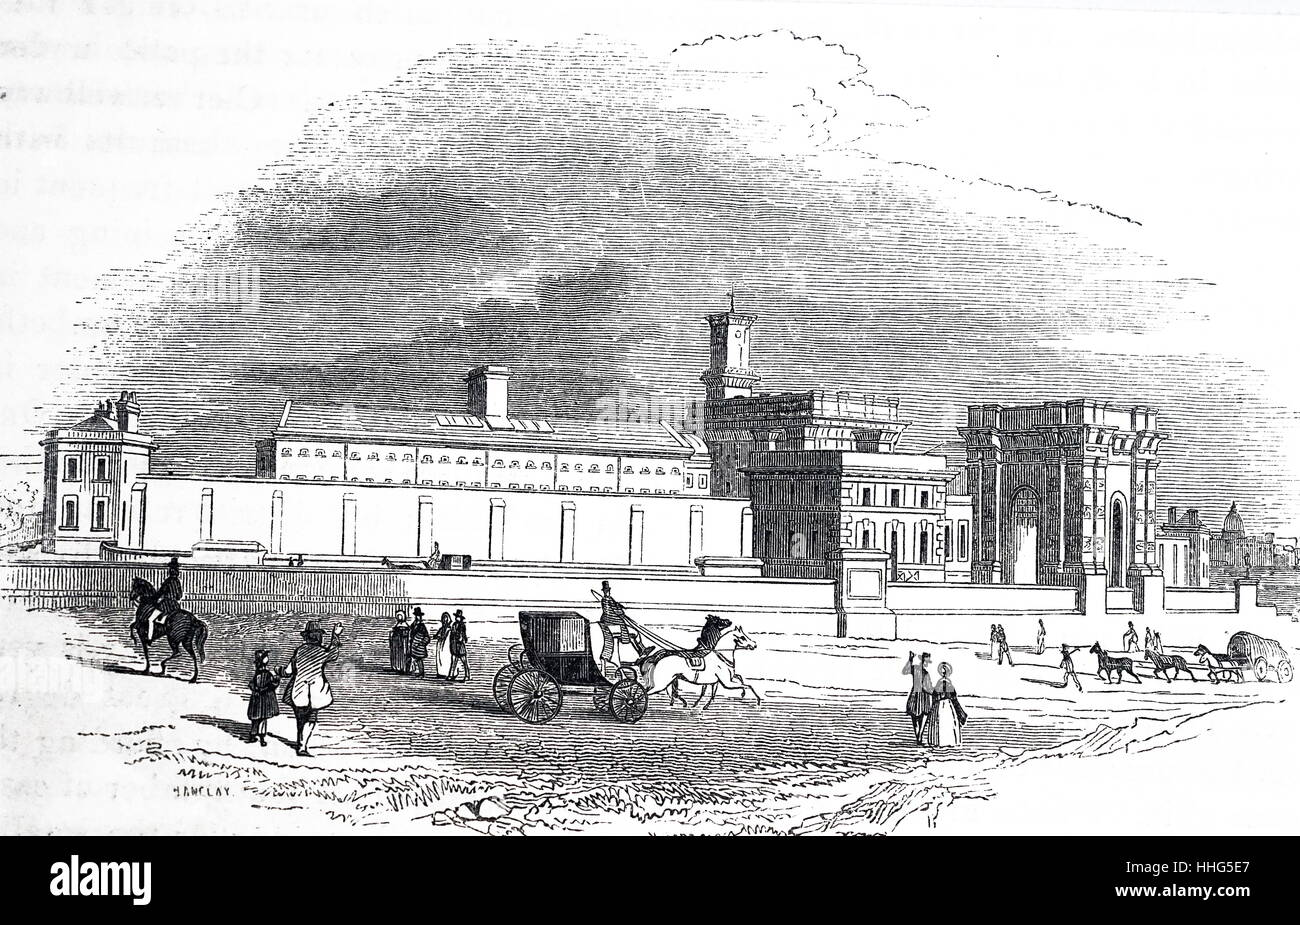 pentonville prison history A new prison designed by george dance and built between 1770 and 1778 was burnt down in the gordon riots in 1780, but was again rebuilt 1780-1783 the place of public execution in london was then moved from tyburn to an area.